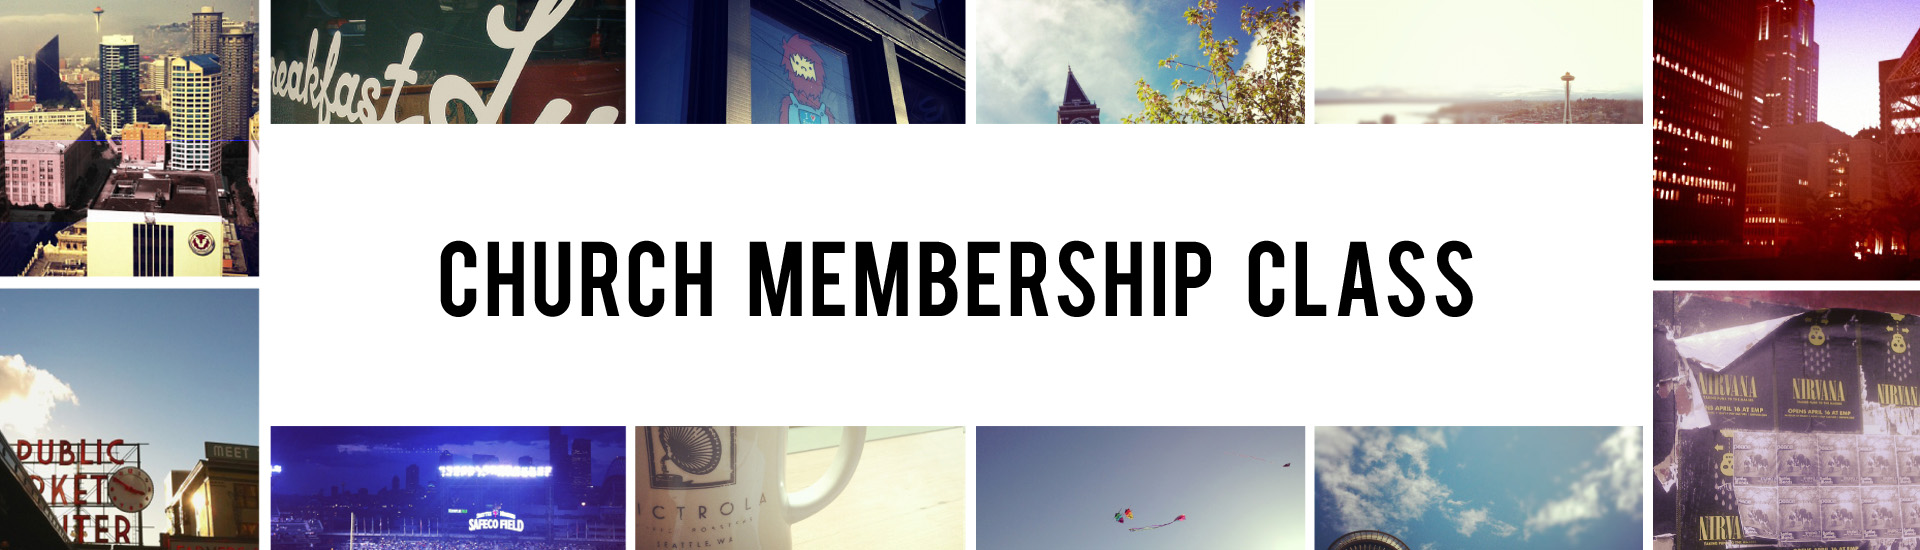 Church Membership | High Point Baptist Church |Membership Class